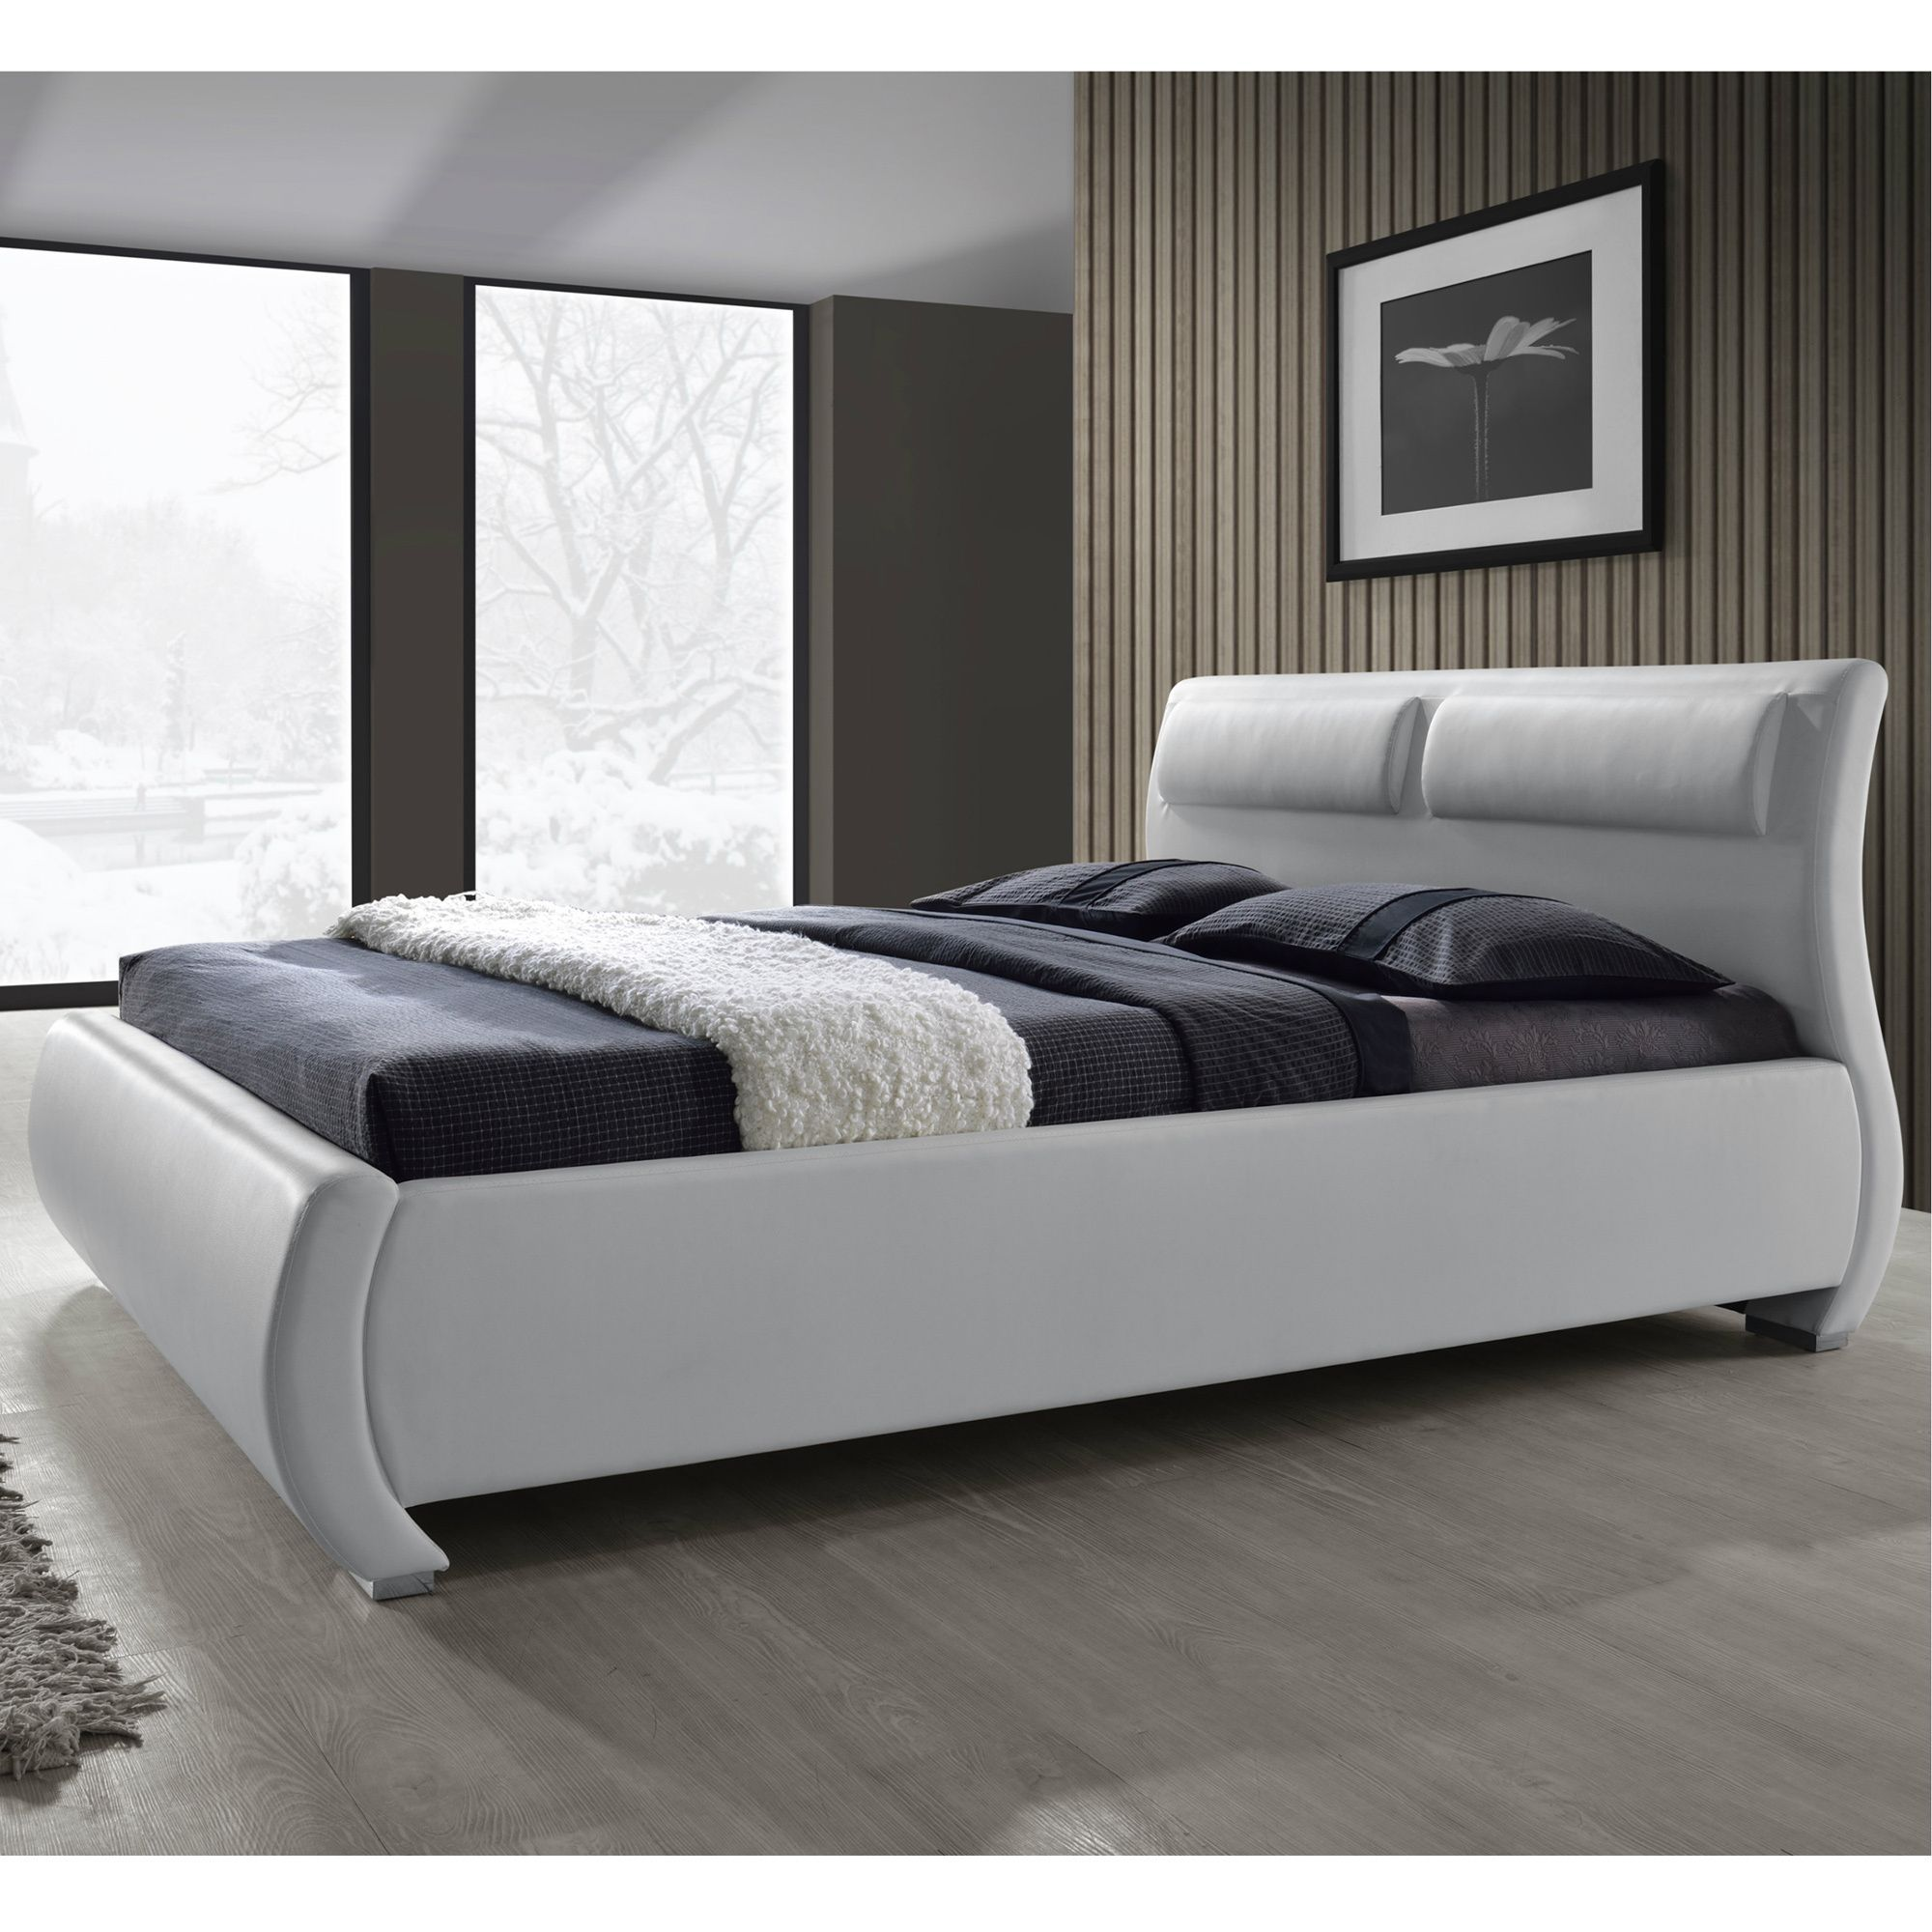 The Modesto bed offers unmistakable style with its S shaped ...